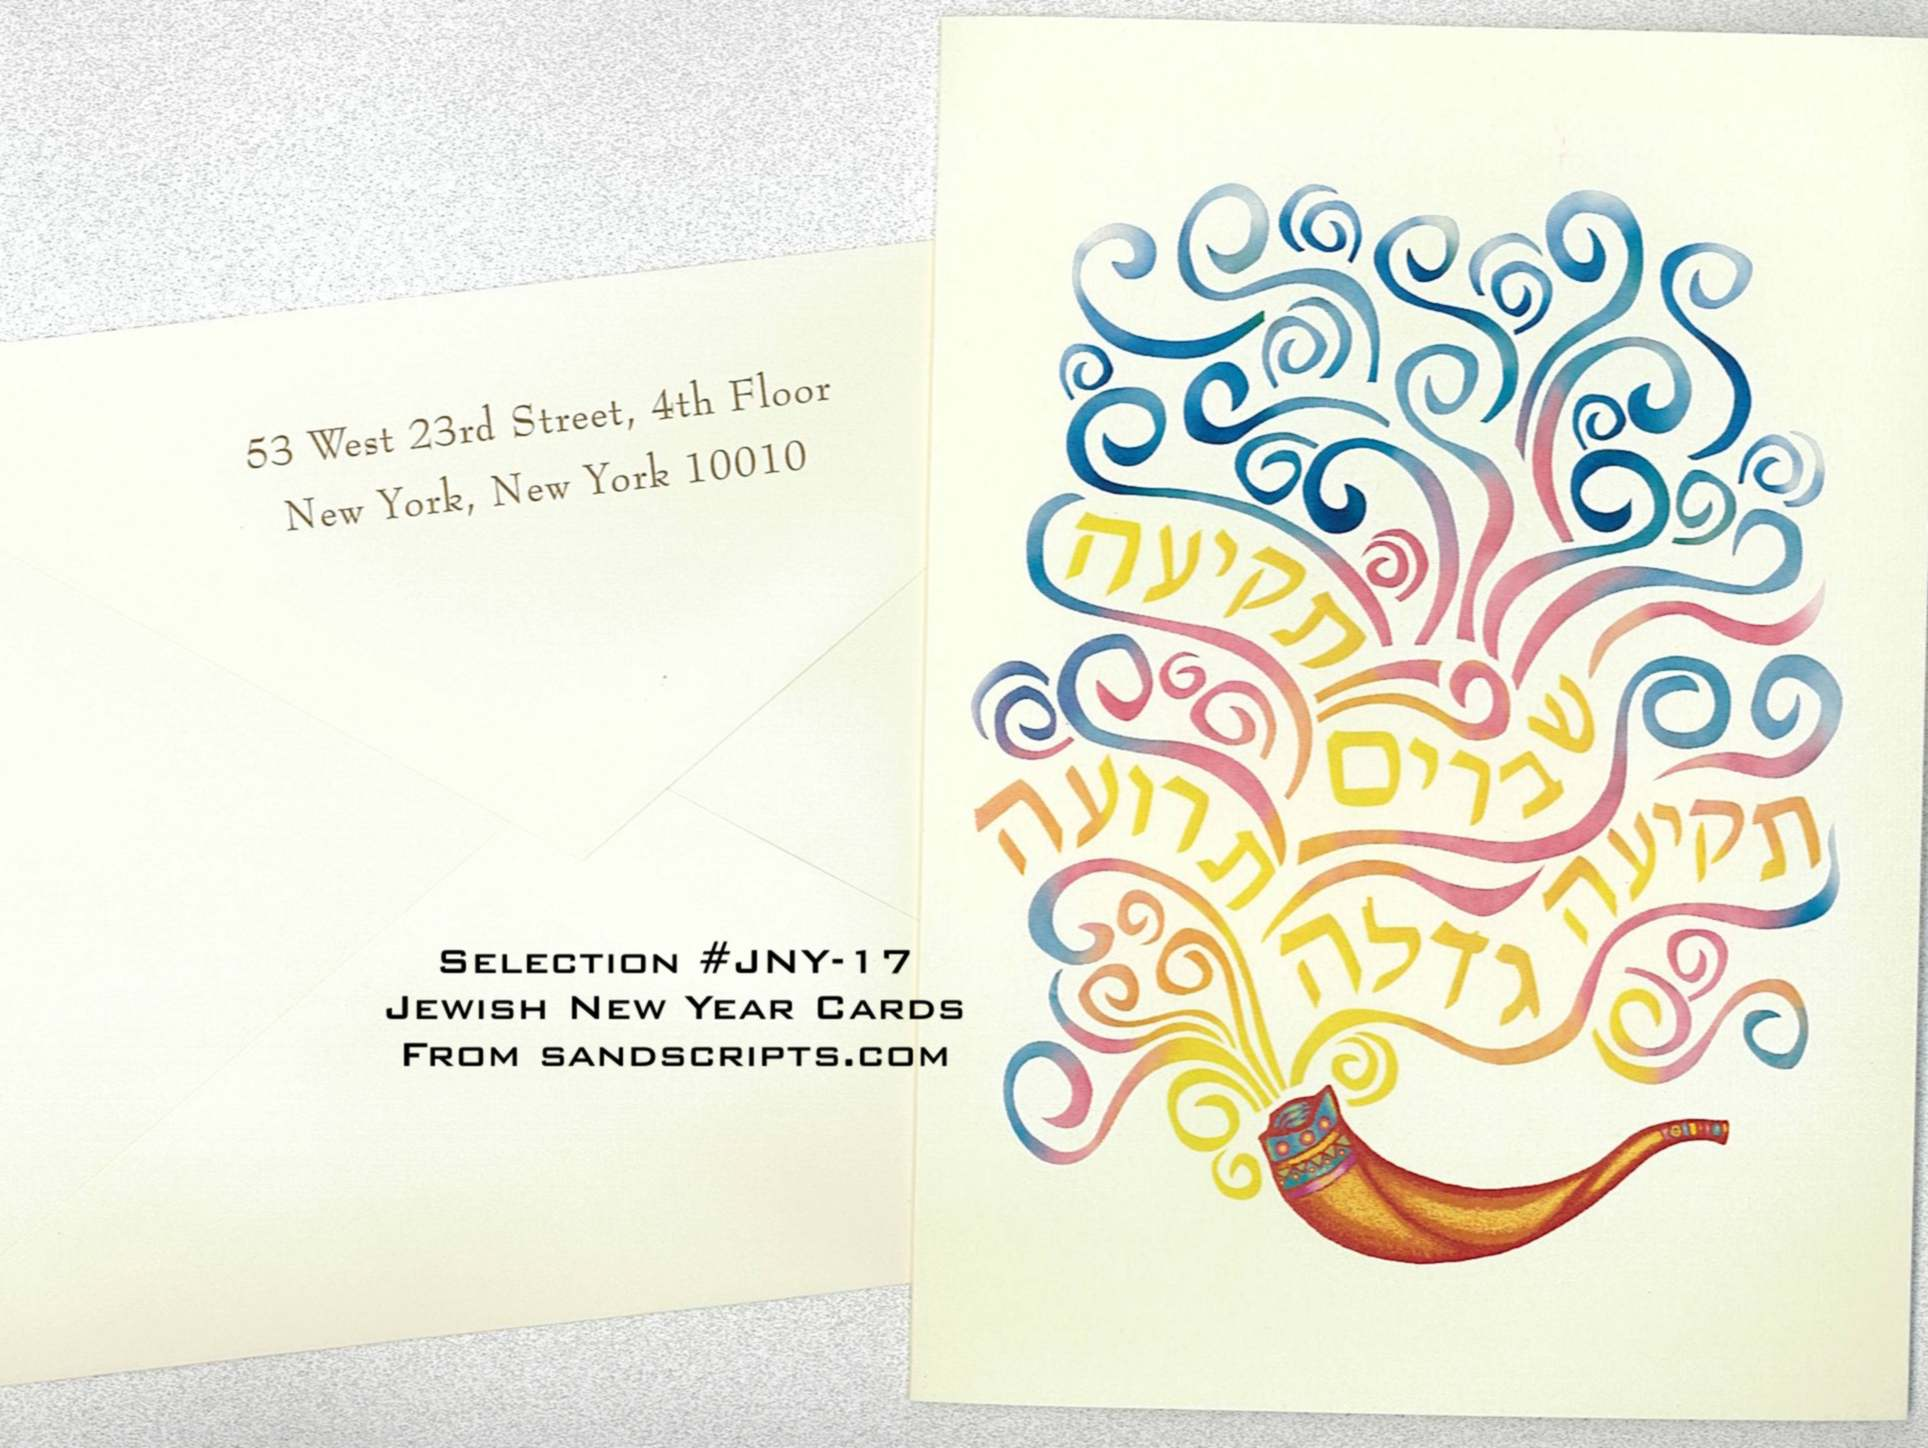 Jewish new year rosh hashanah cards from sand scripts kristyandbryce Choice Image